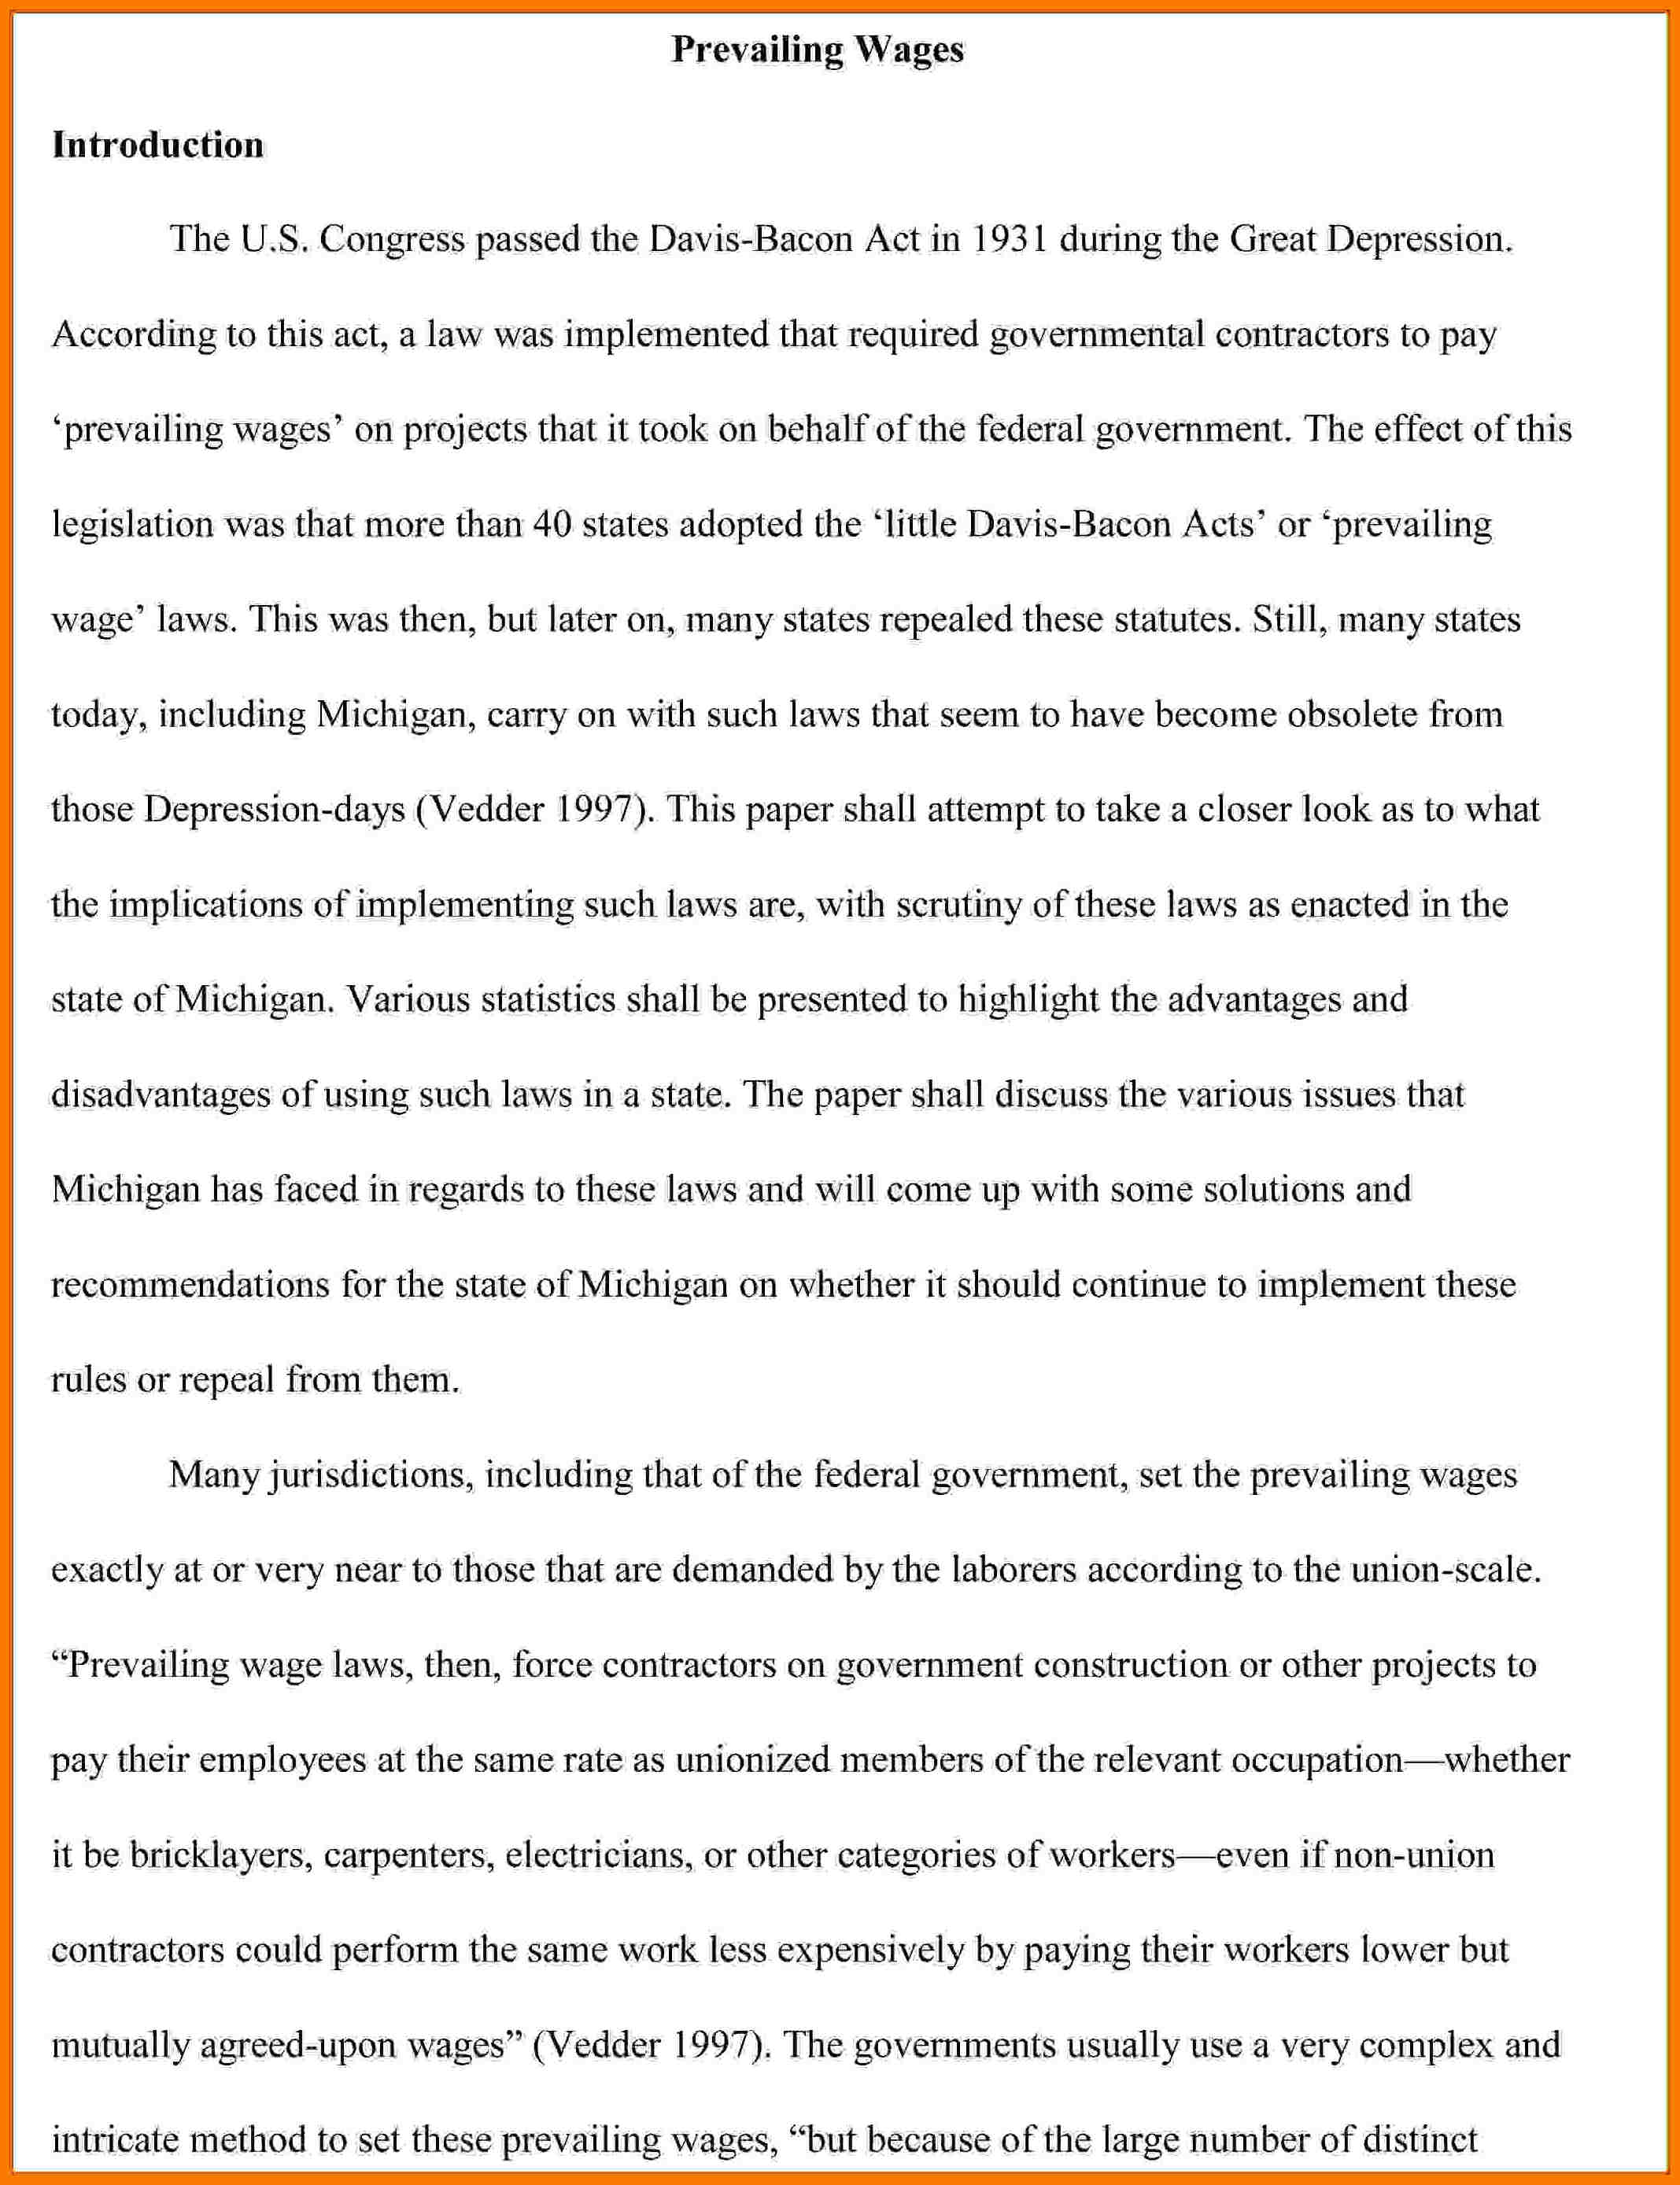 005 Collection Of Solutions Introductionpa Paper Great Research How To Writen For Fearsome Write An Introduction A Apa Full